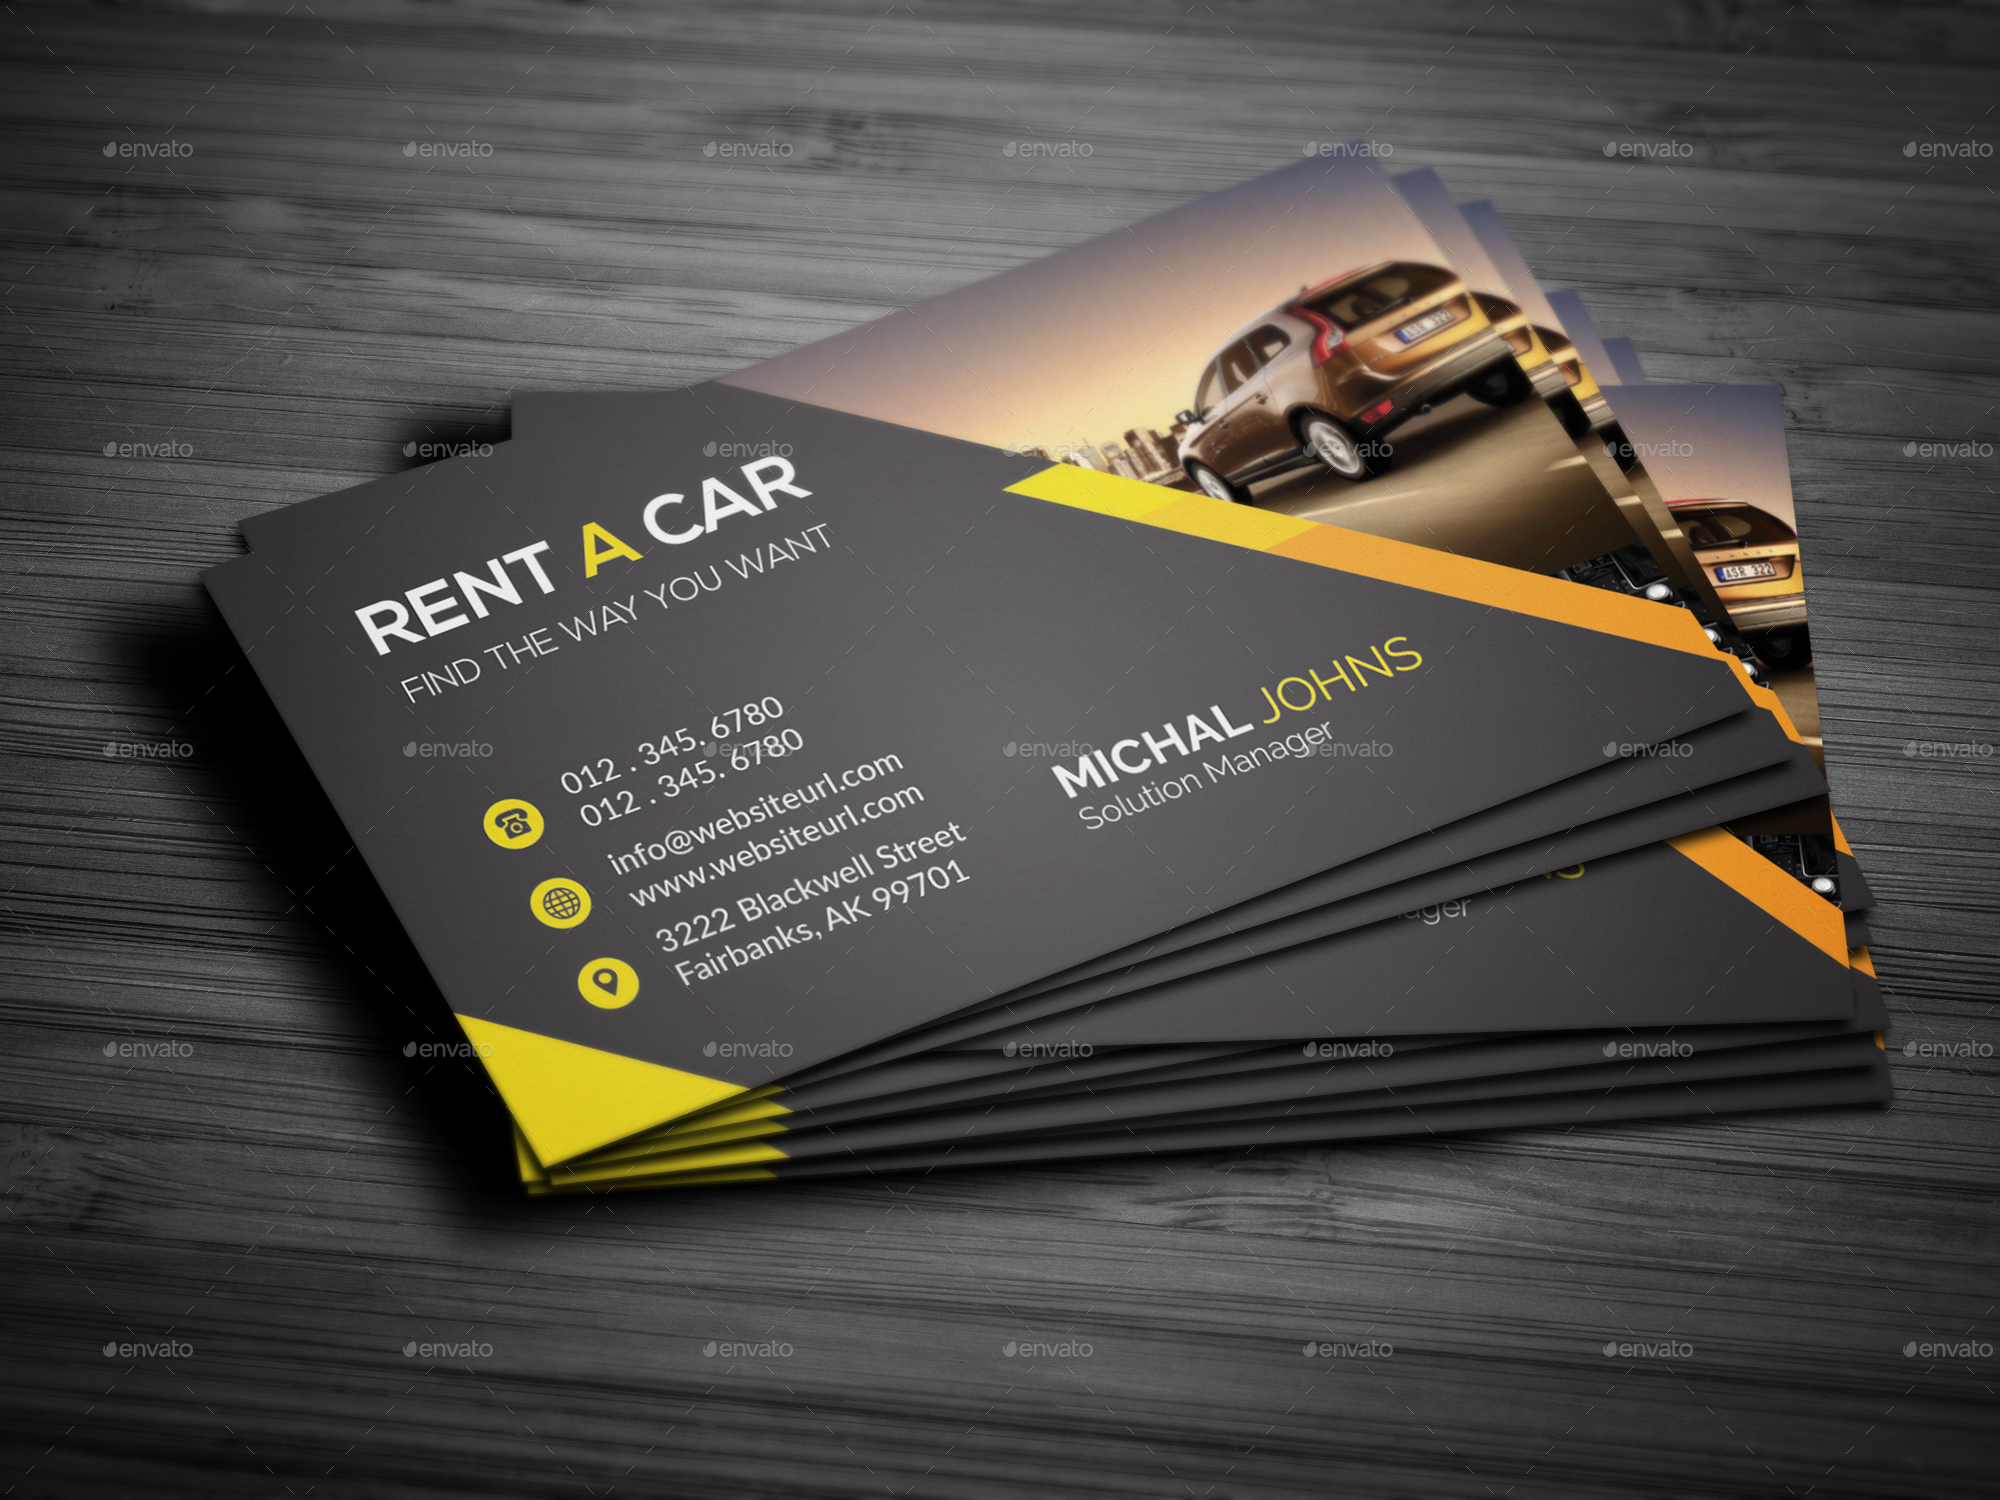 Rent A Car Business Card Business Cards Print Templates Preview Image Set Preview_ Jpg